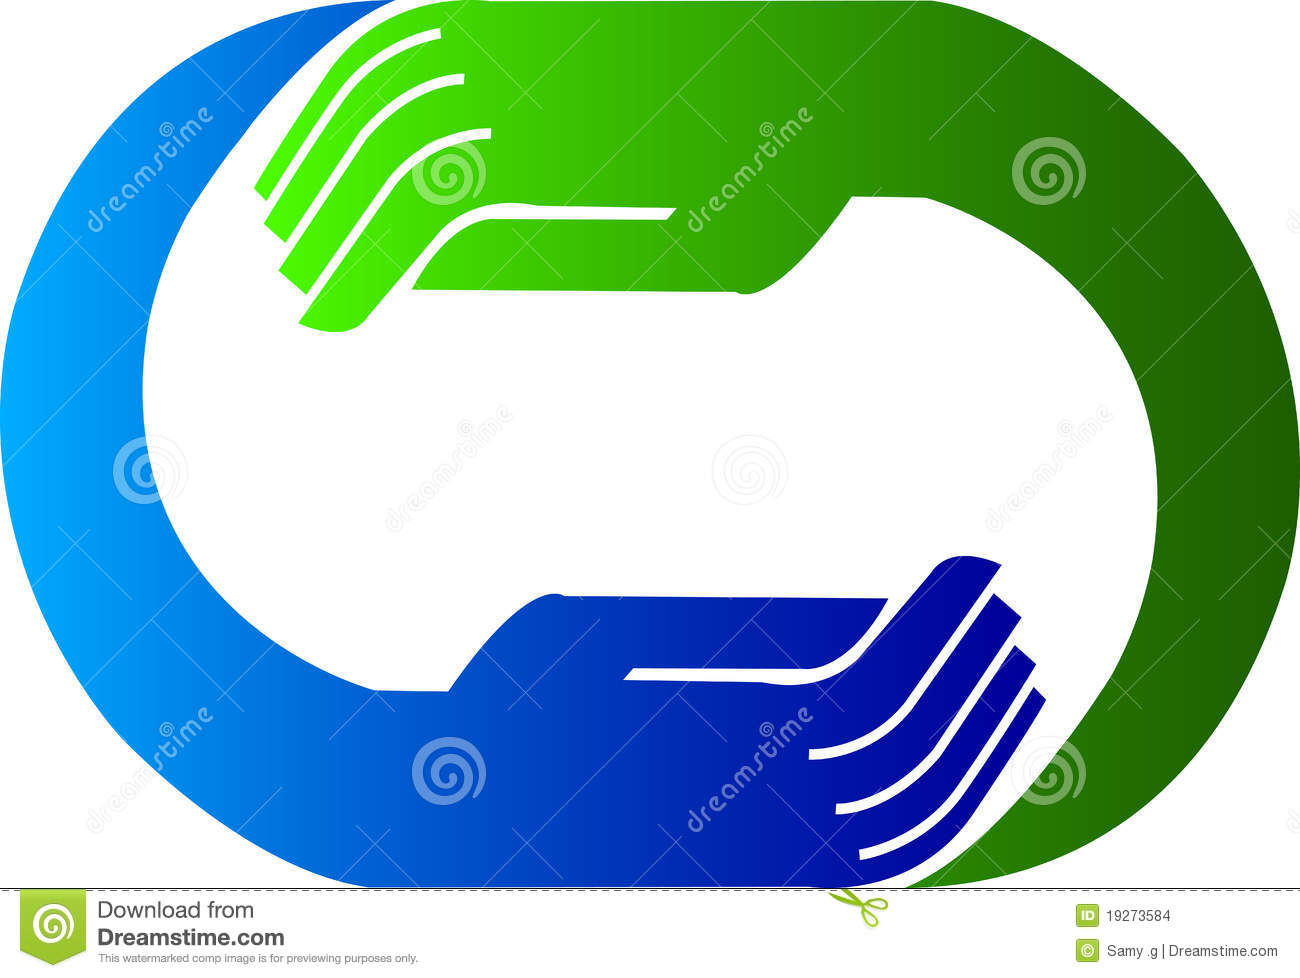 Illustration art of a hand logo with isolated background